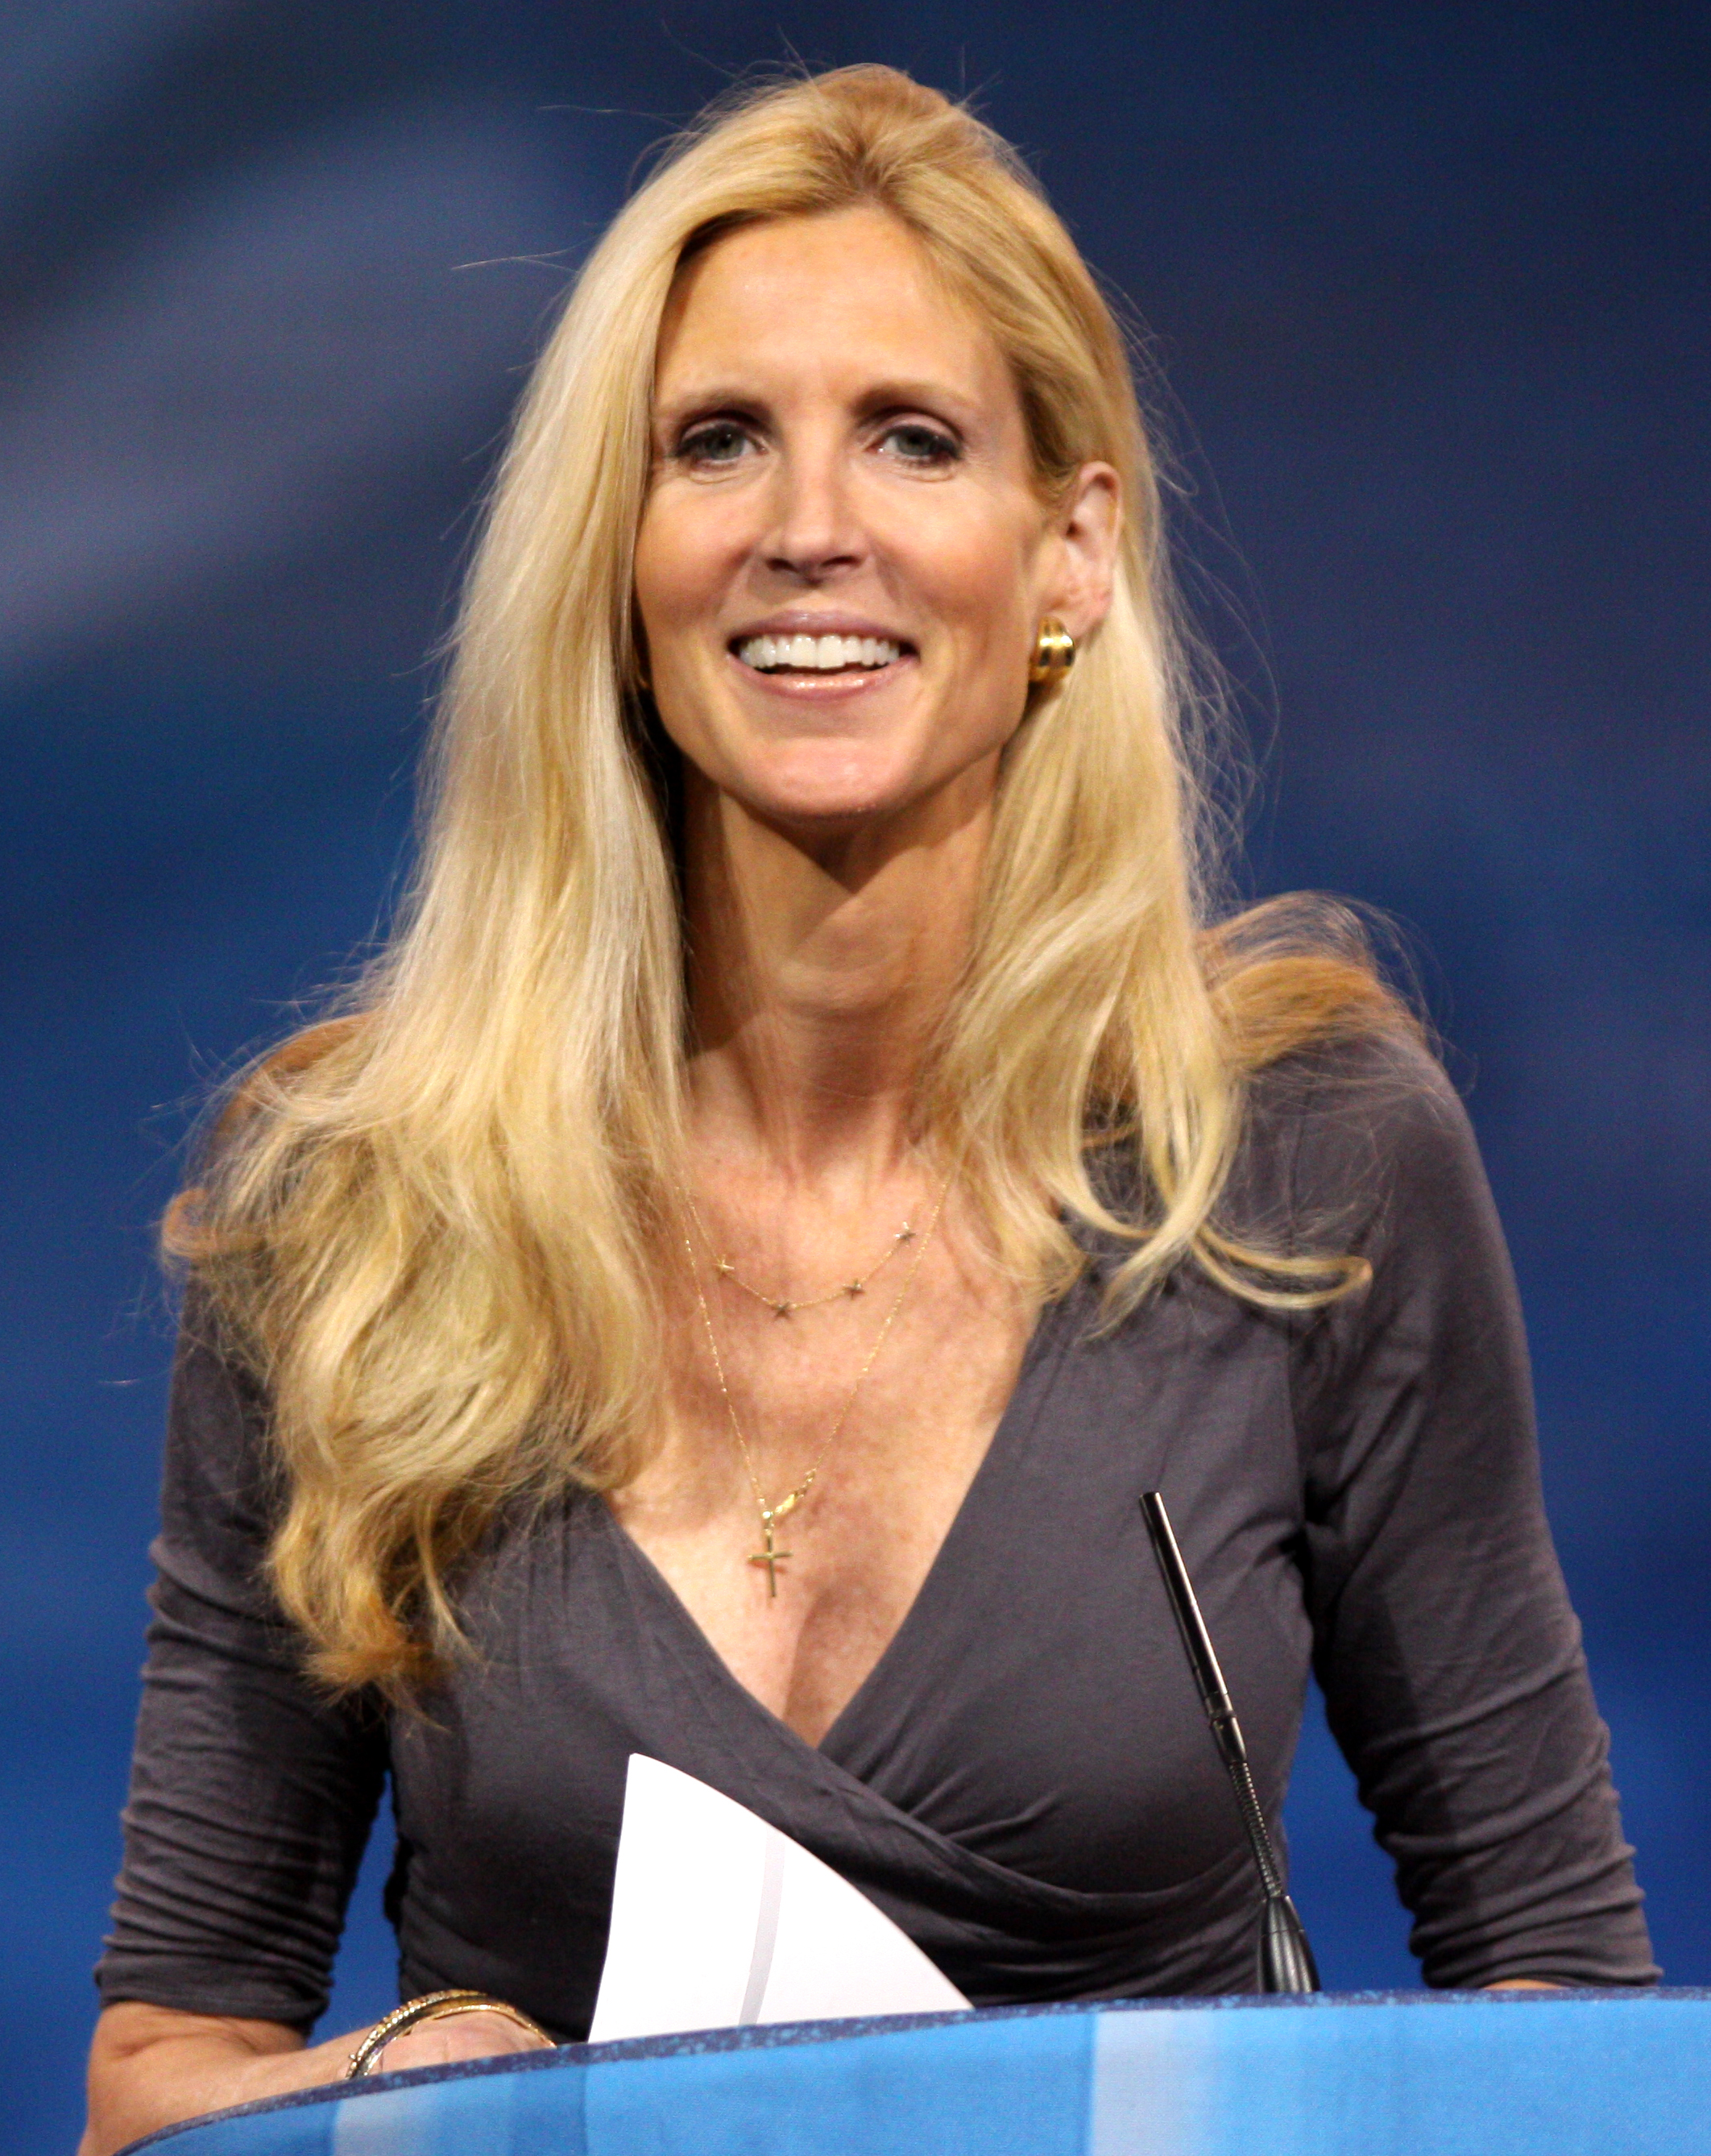 Fake ann coulter photos Good Morning Britain rows with Ann Coulter over